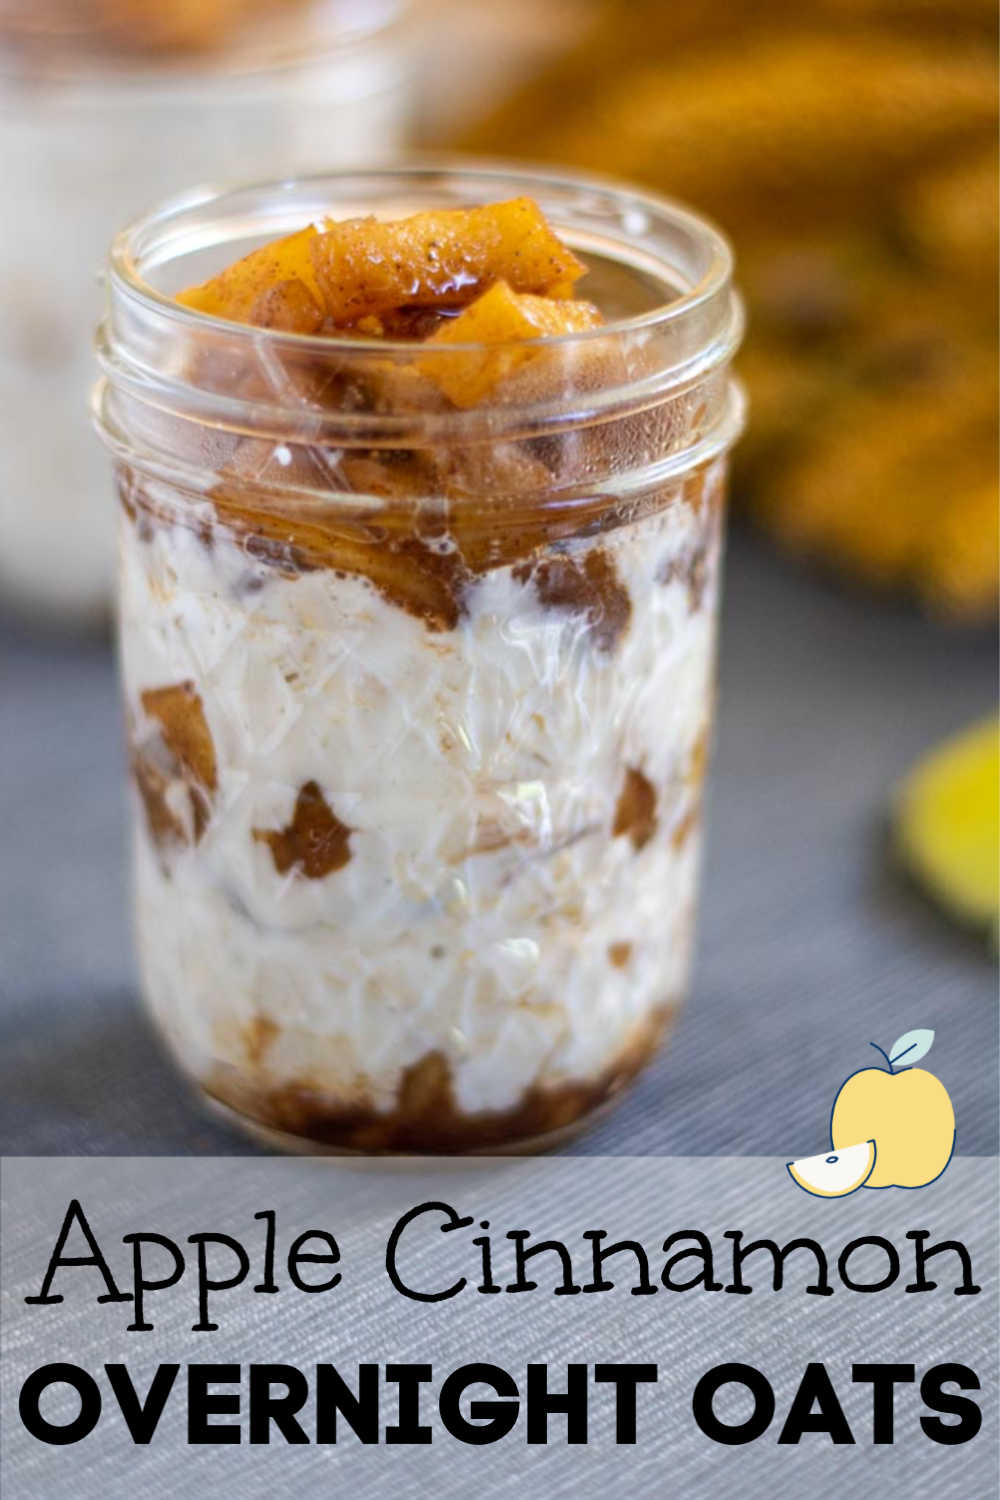 Baked Apple Cinnamon Overnight Oats is my new favorite meal prep breakfast. It takes just ten minutes to cook the apples but it is well worth it for this delicious meal in a jar! #applecinnamon #overnightoats #oatmeal #applepie #mealprep #makeahead